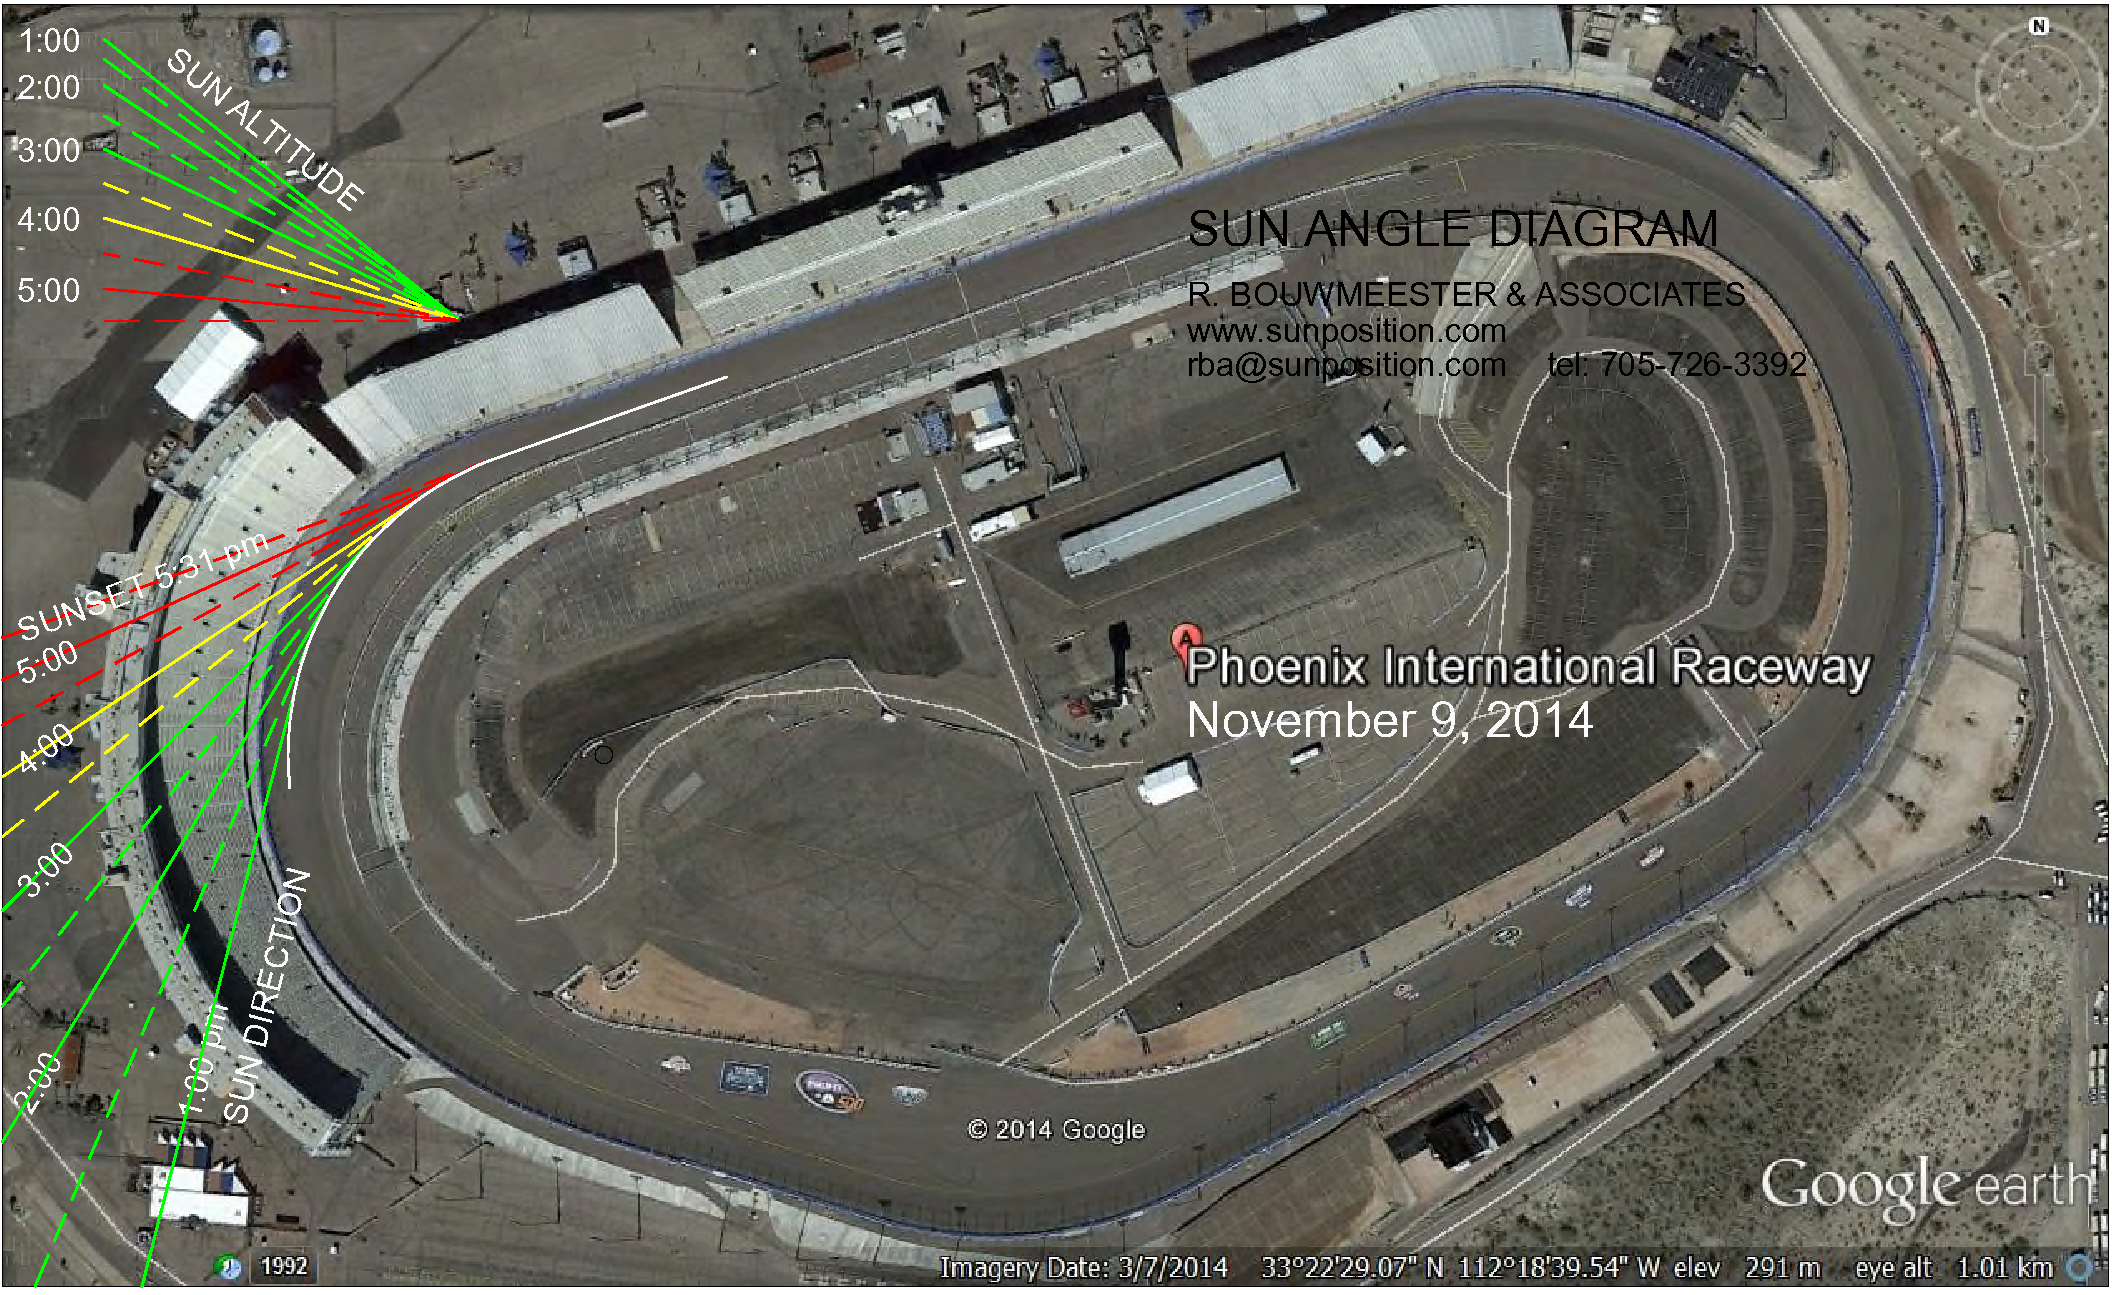 The diagram below showsthe sun angles at PIR for the November 9th race ...